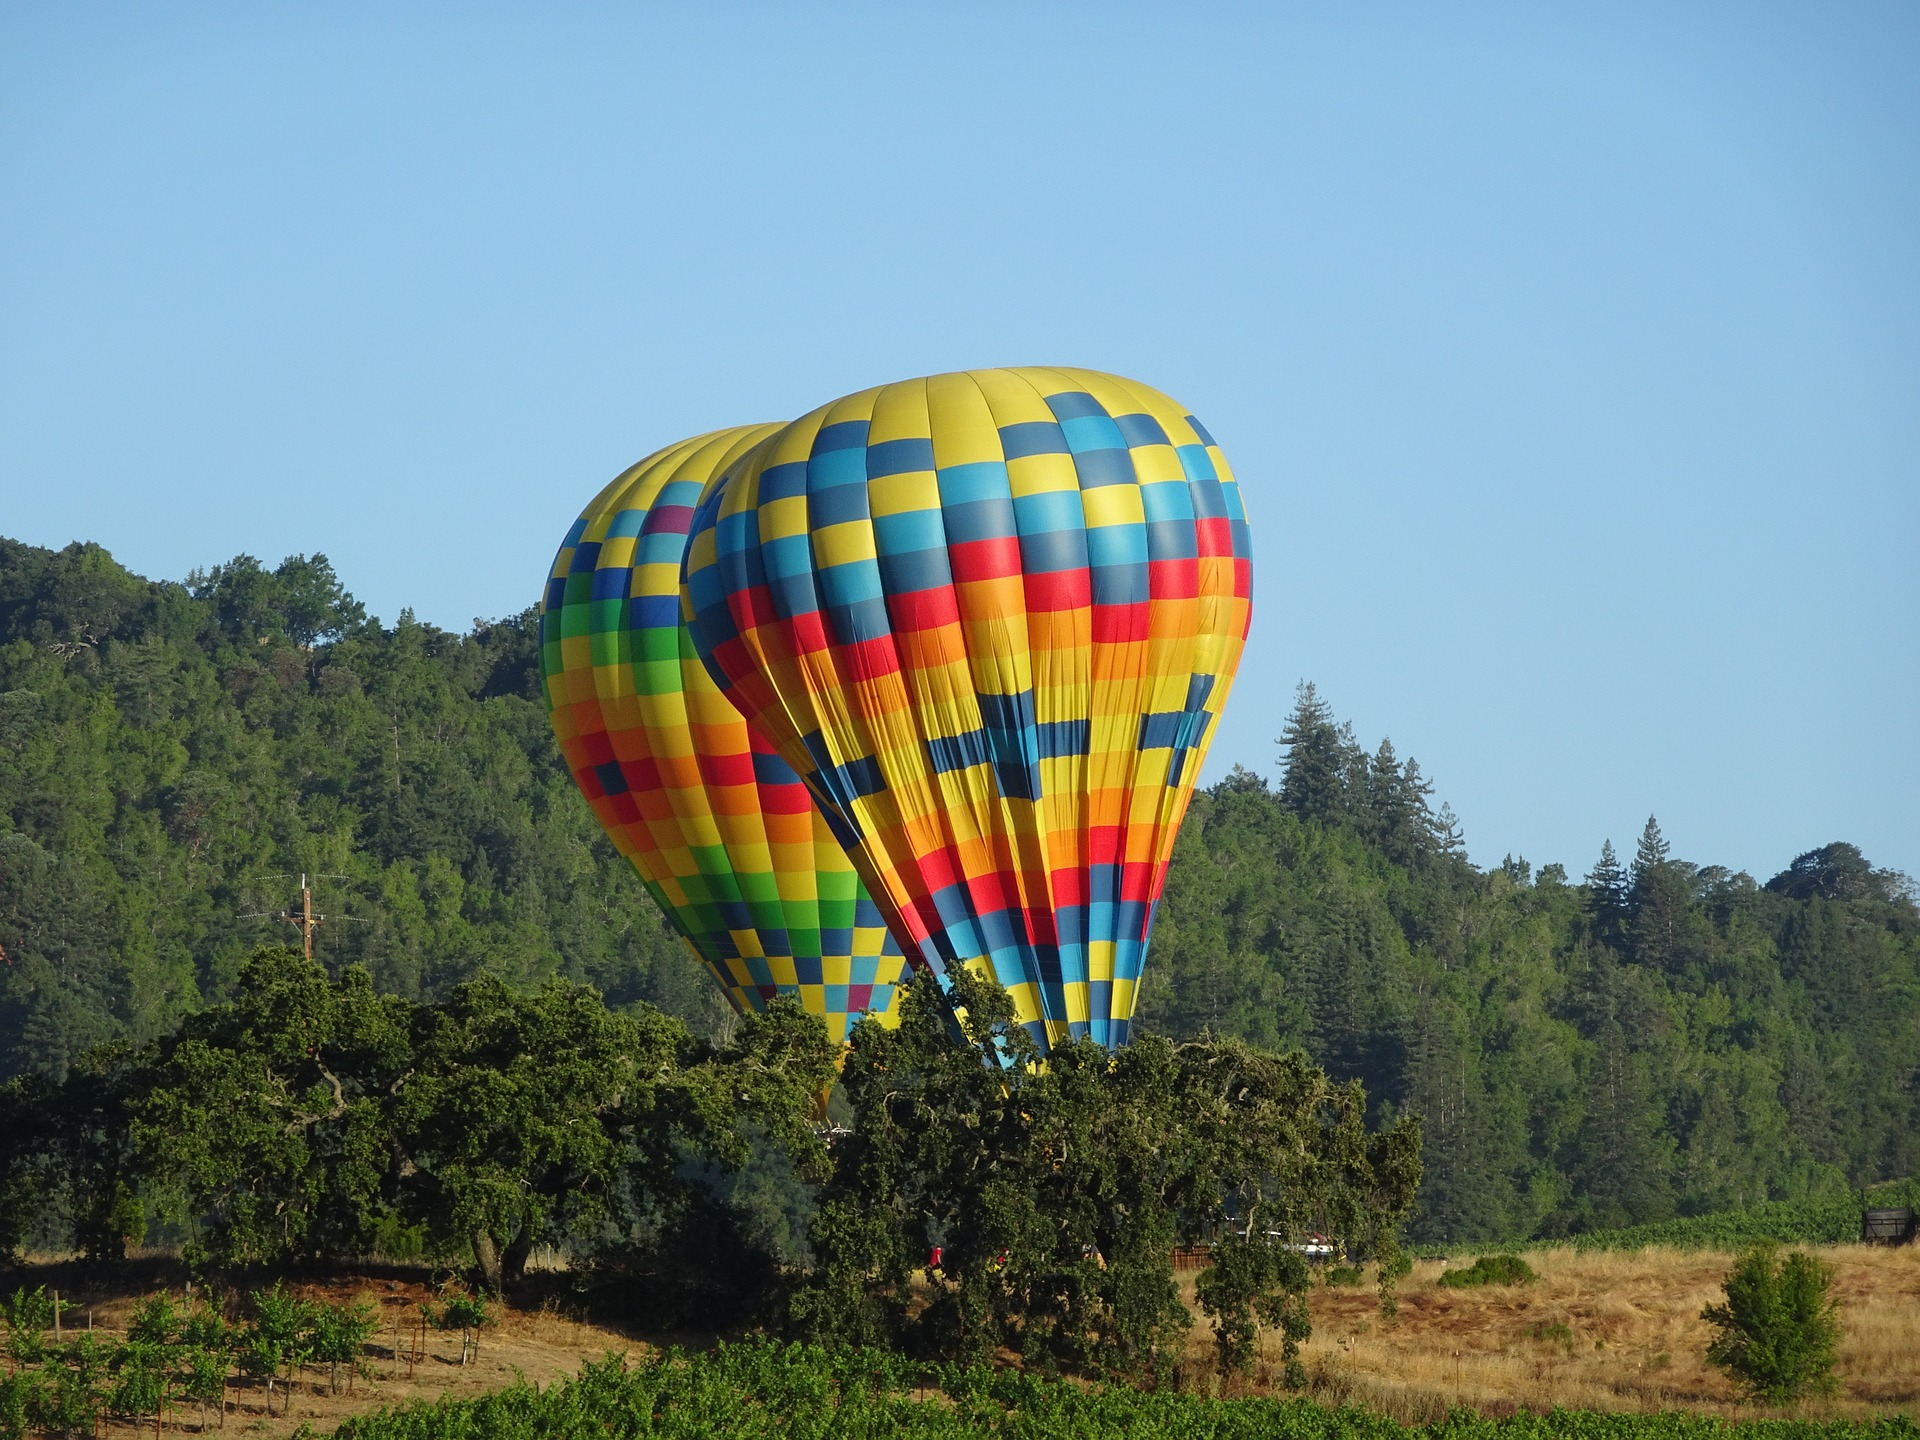 Hot air balloons in Napa, California